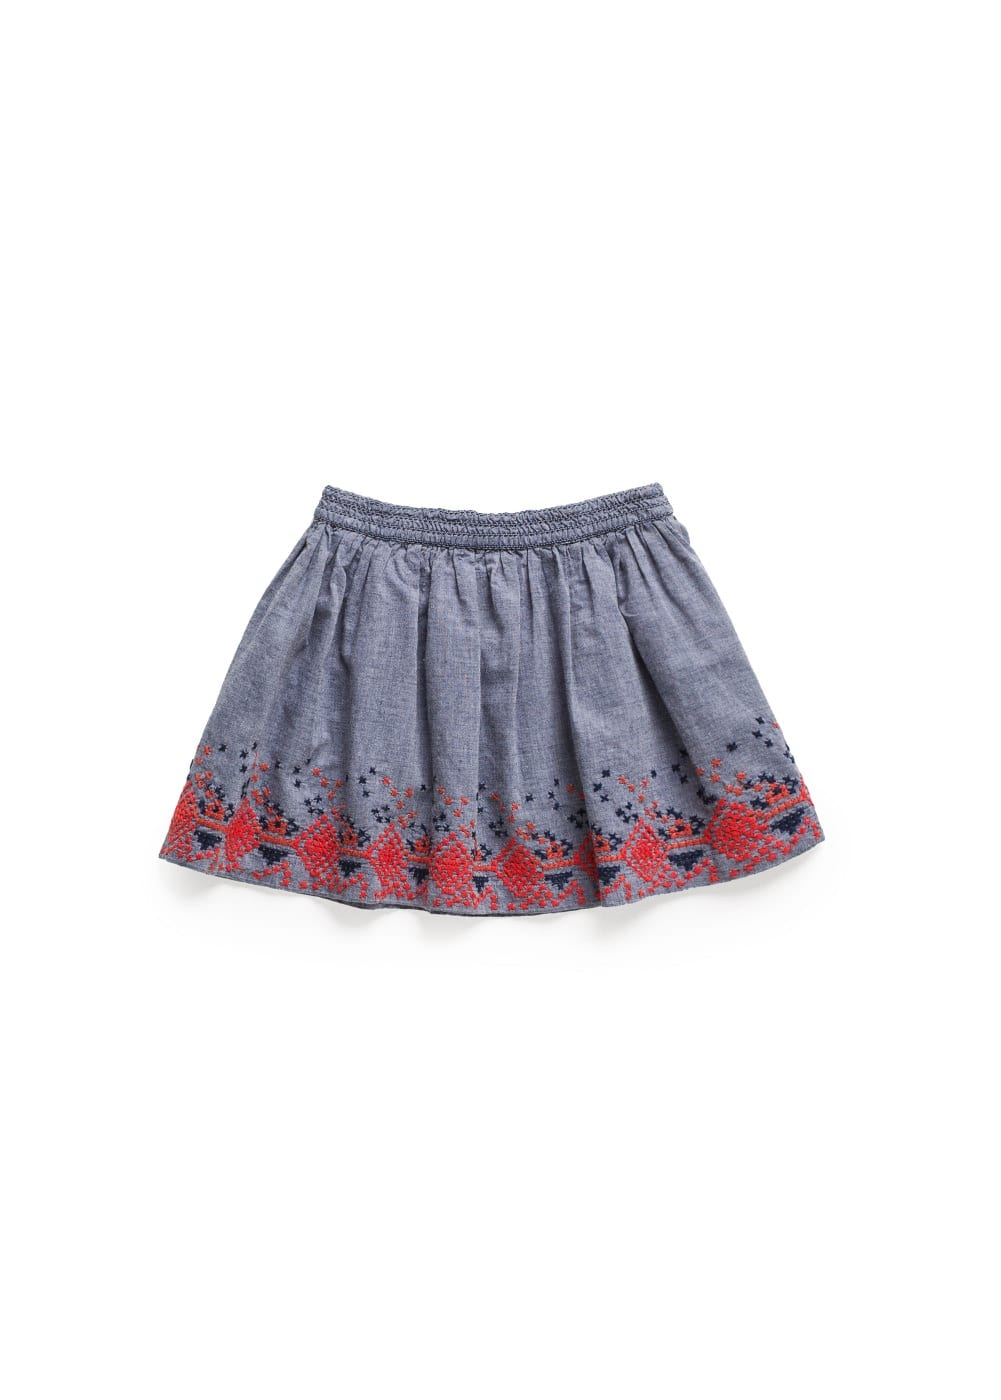 Embroidered chambray skirt